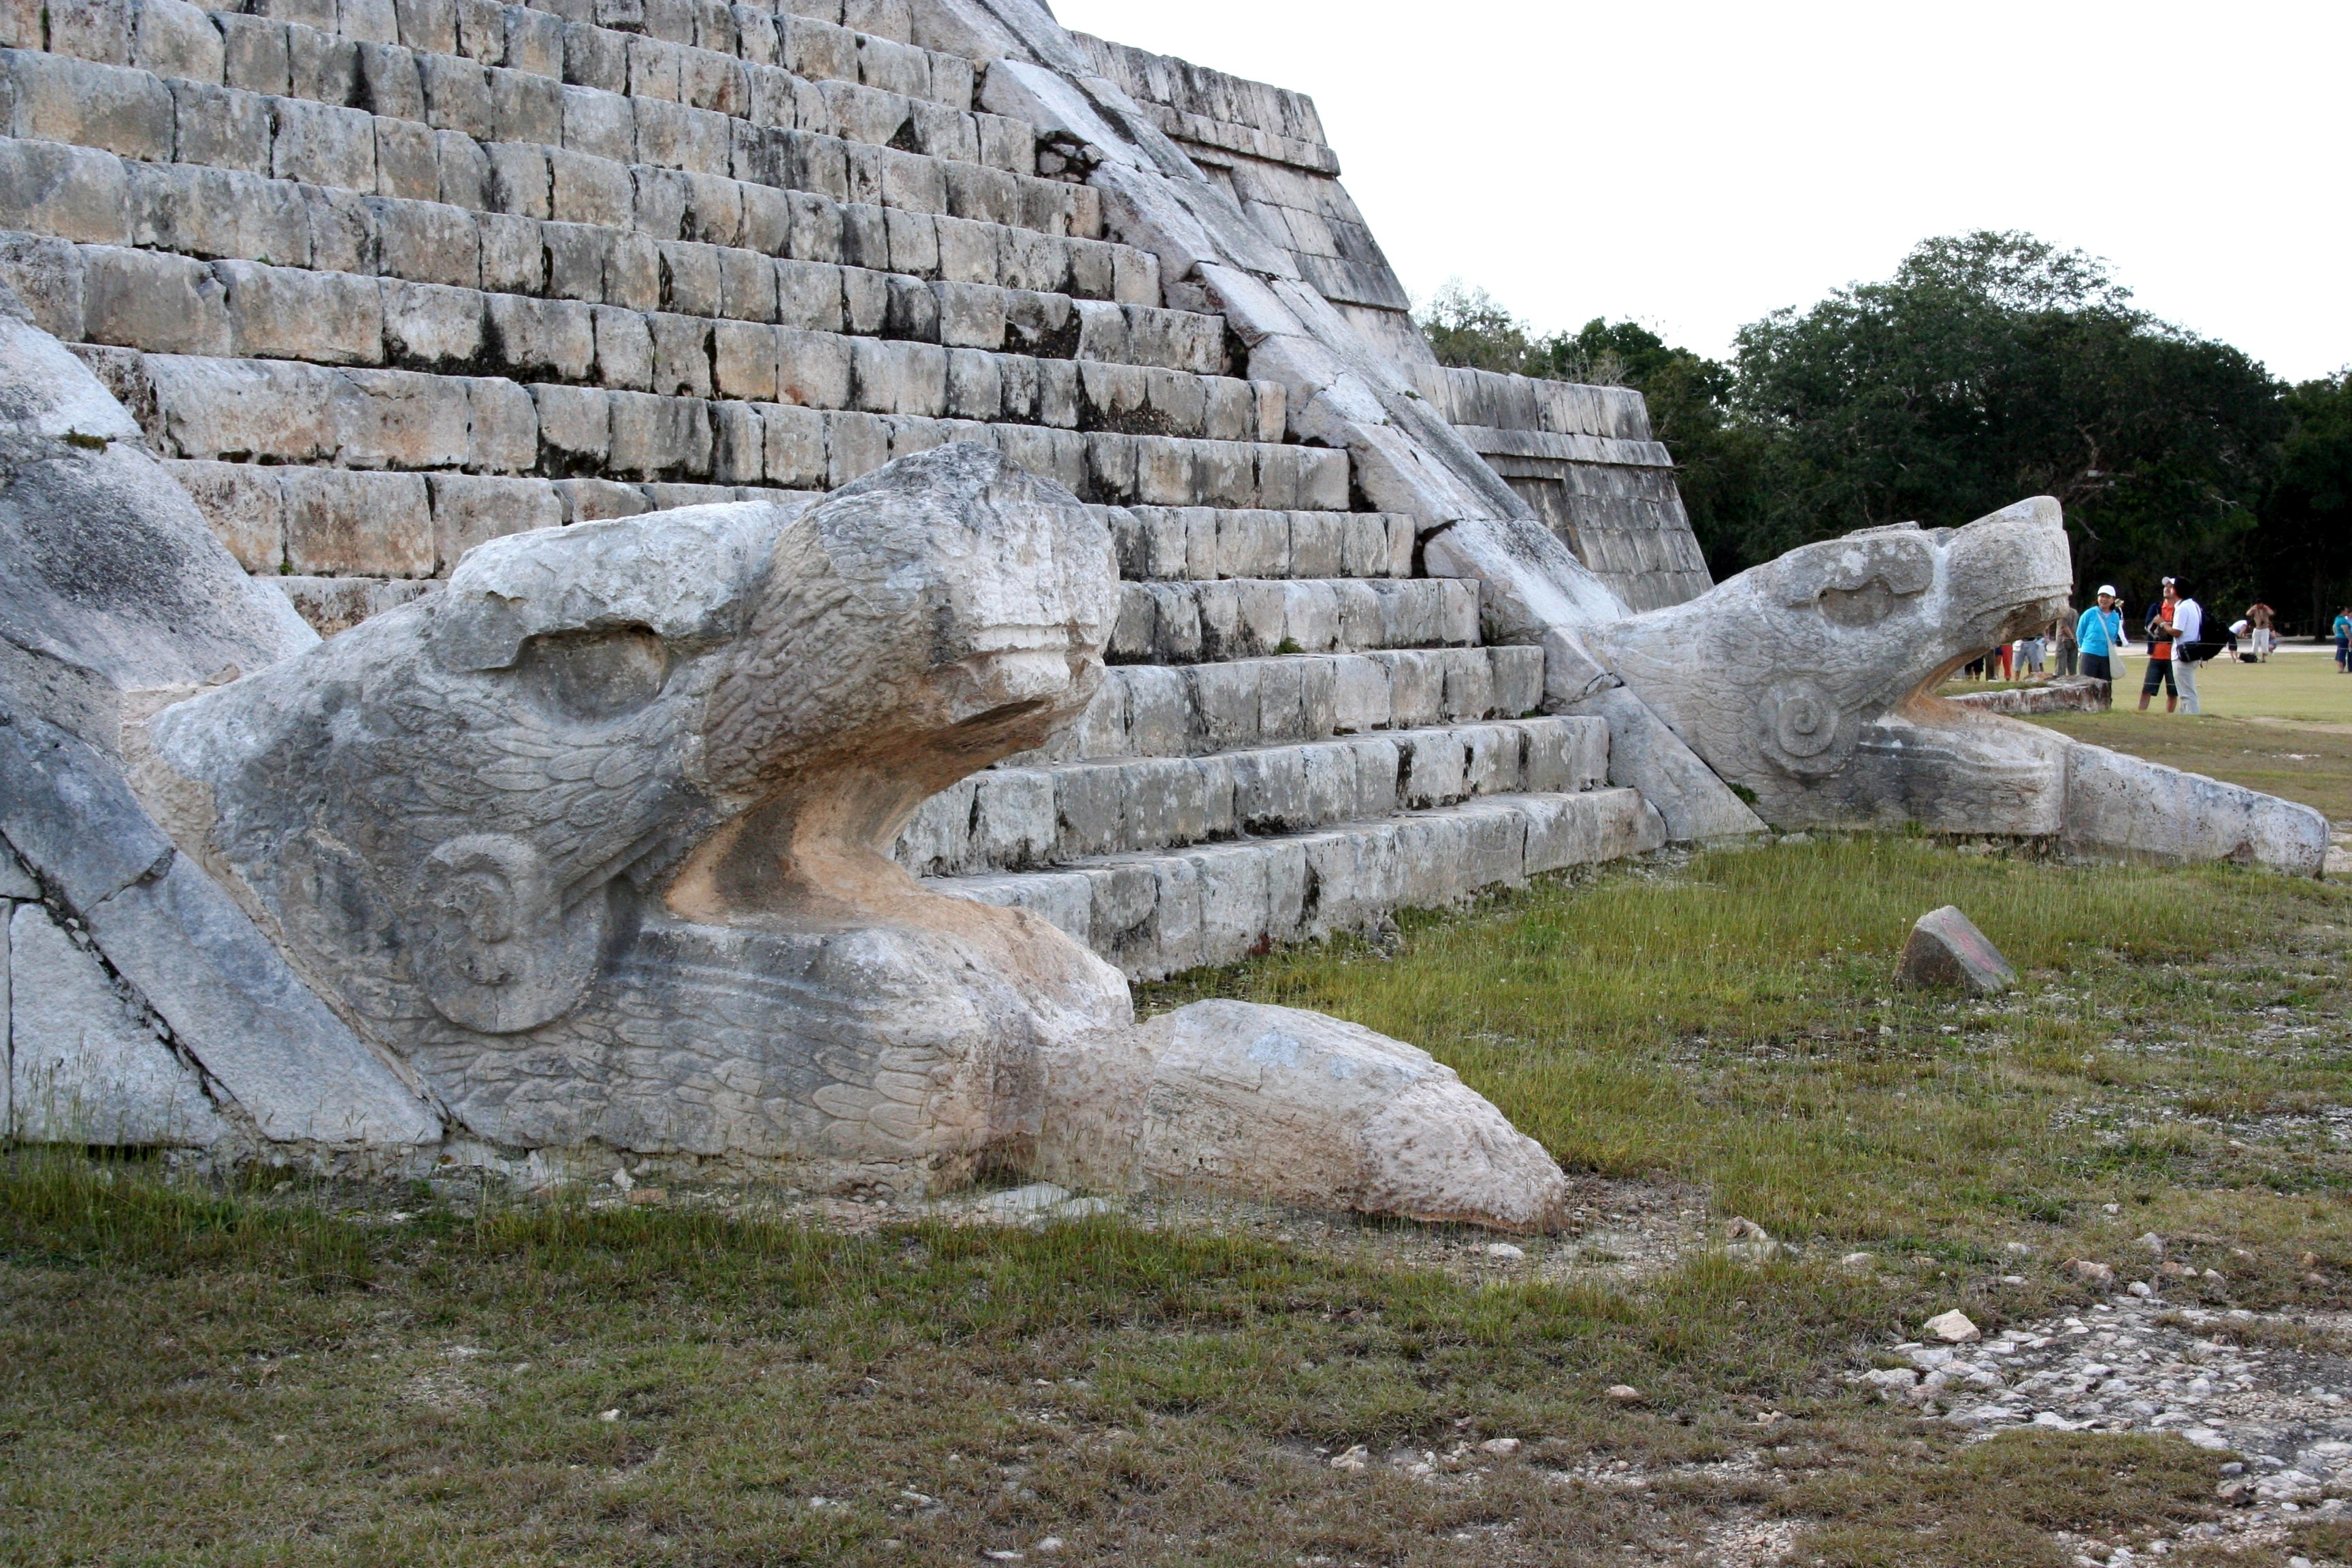 El Castillo Serpents